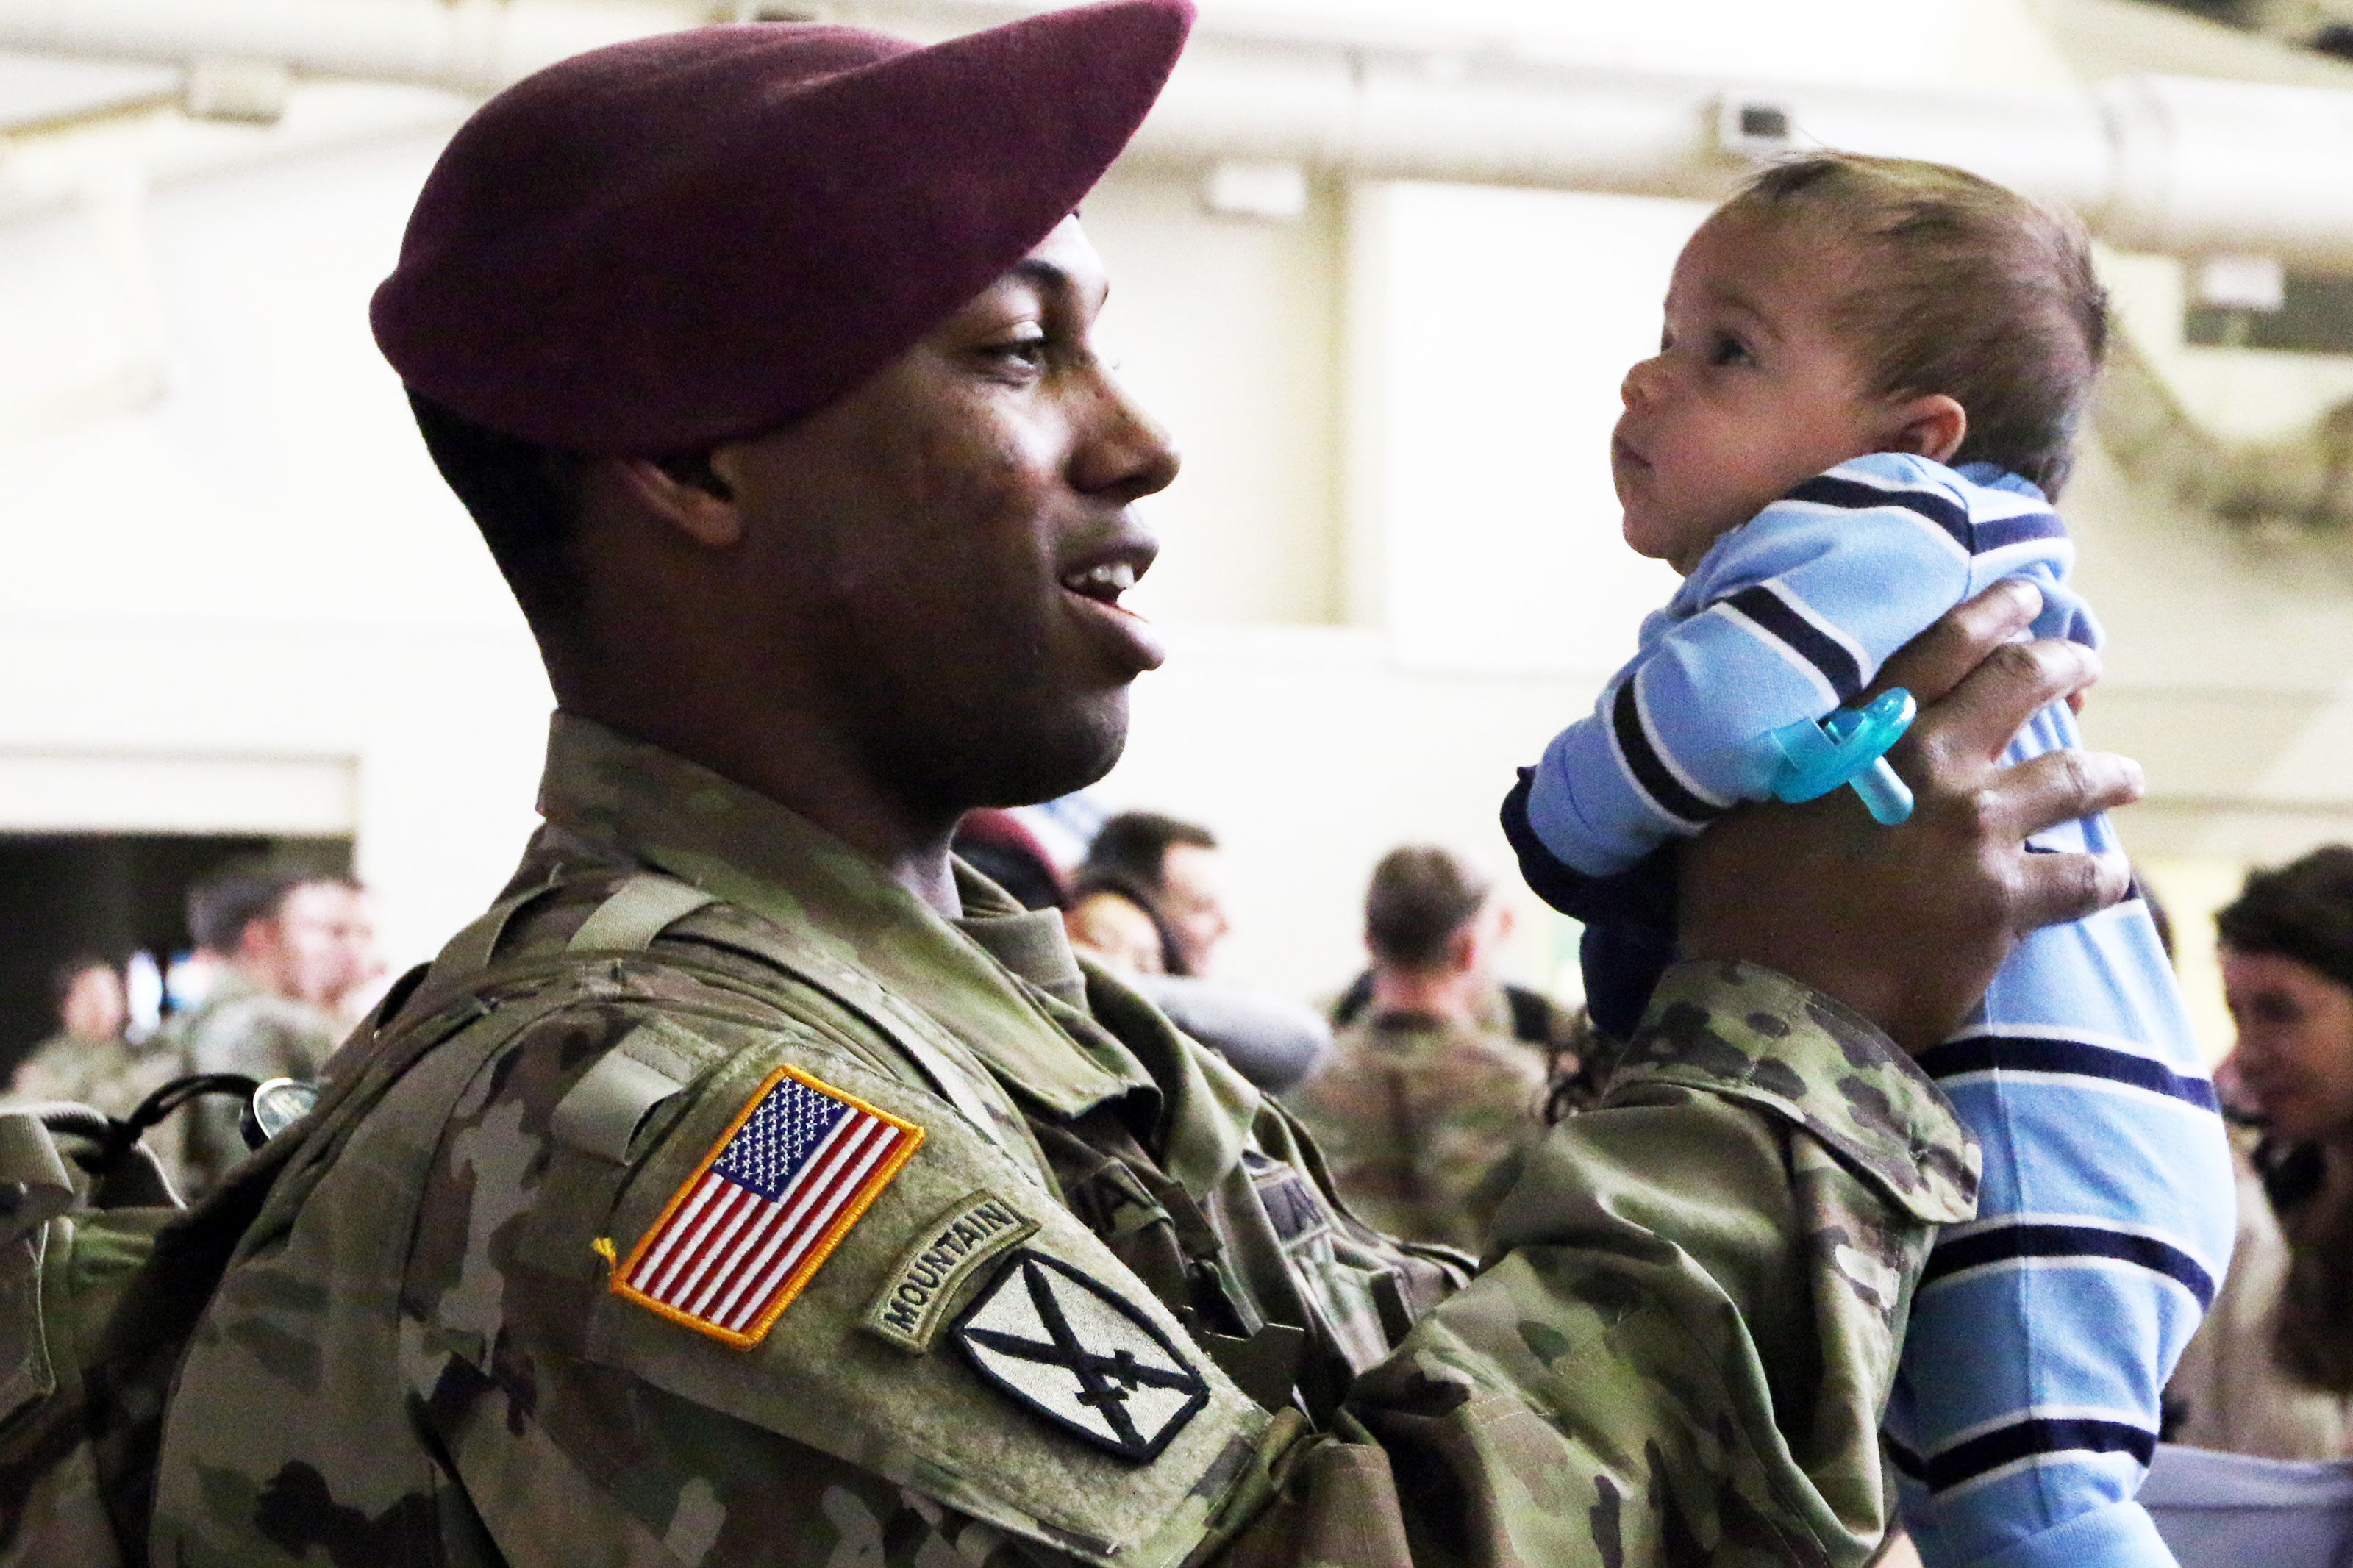 Families and friends reunite with Paratroopers from 1st Brigade Combat Team, 82nd Airborne Division, Mar. 19th at Pope Army Airfield on Fort Bragg, N.C. (U.S. Army/Sarah Goss)